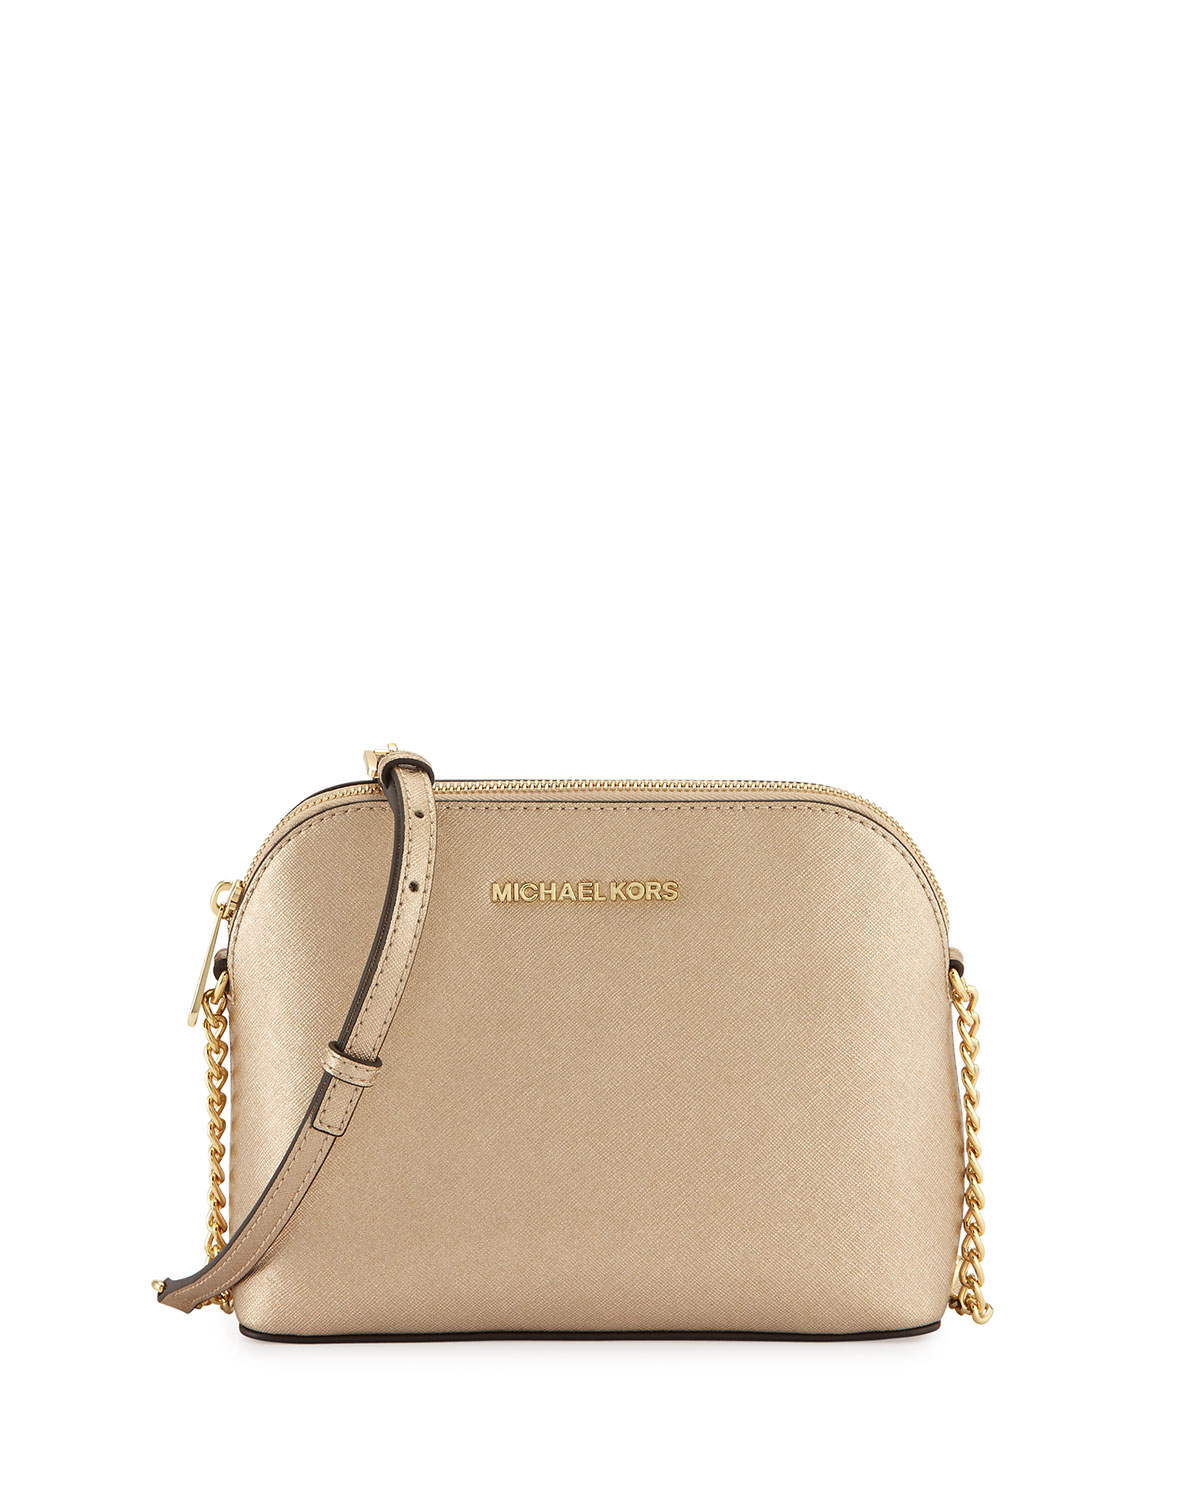 2262214bc2a2 MICHAEL Michael Kors Cindy Large Dome Crossbody Bag, Pale Gold ...